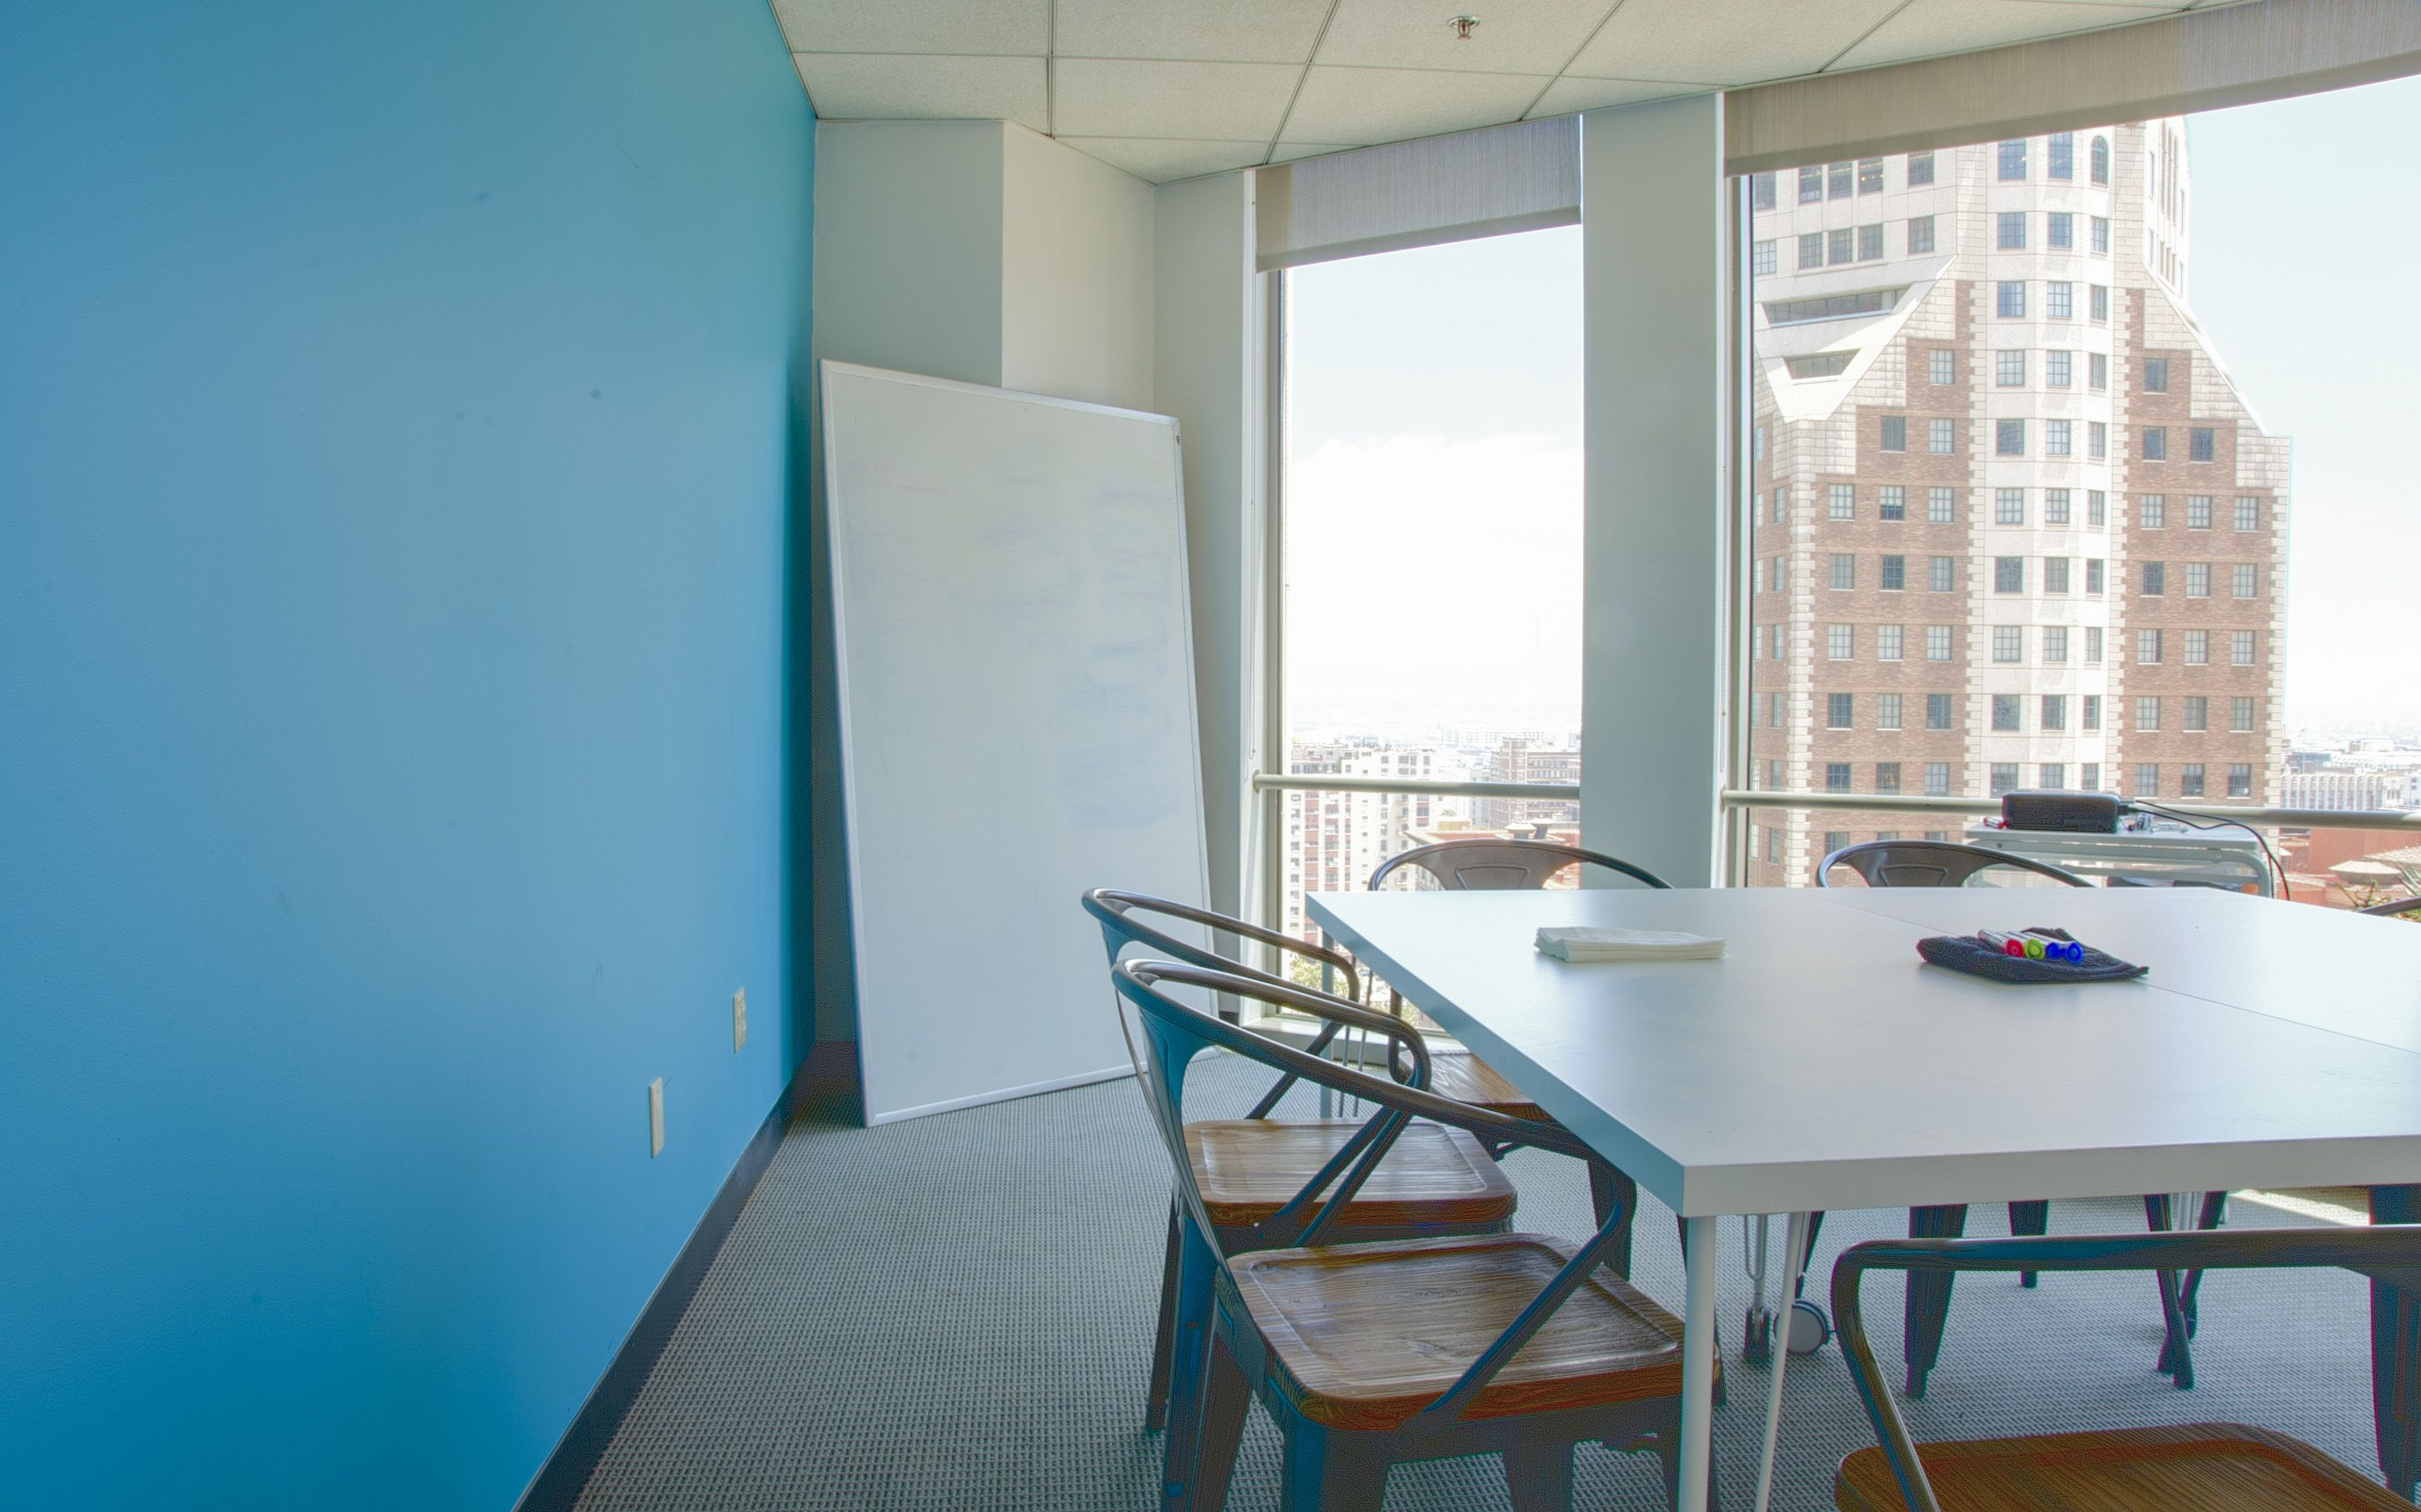 Check out this great Off-Site space on Peerspace.com: Creative ...